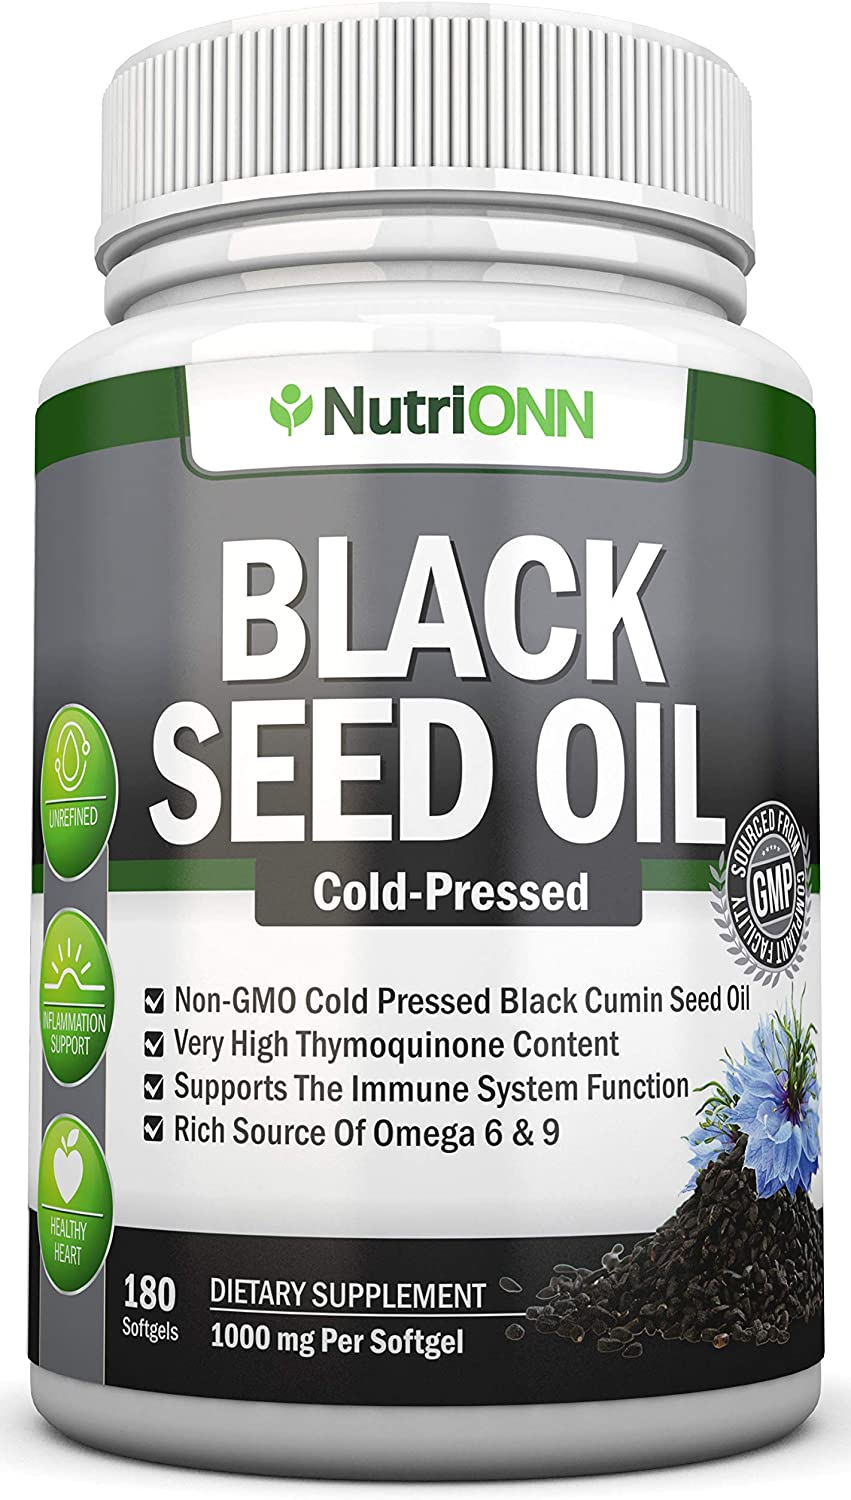 Black Seed Oil - 1000 Mg - 180 Softgels - Cold-Pressed Non-GMO Black Cumin Seed Capsules - Super High Thymoquinone Content - Nigella Sativa - Rich in Omega 6 & 9 Fatty Acids - Immune & Joint Support